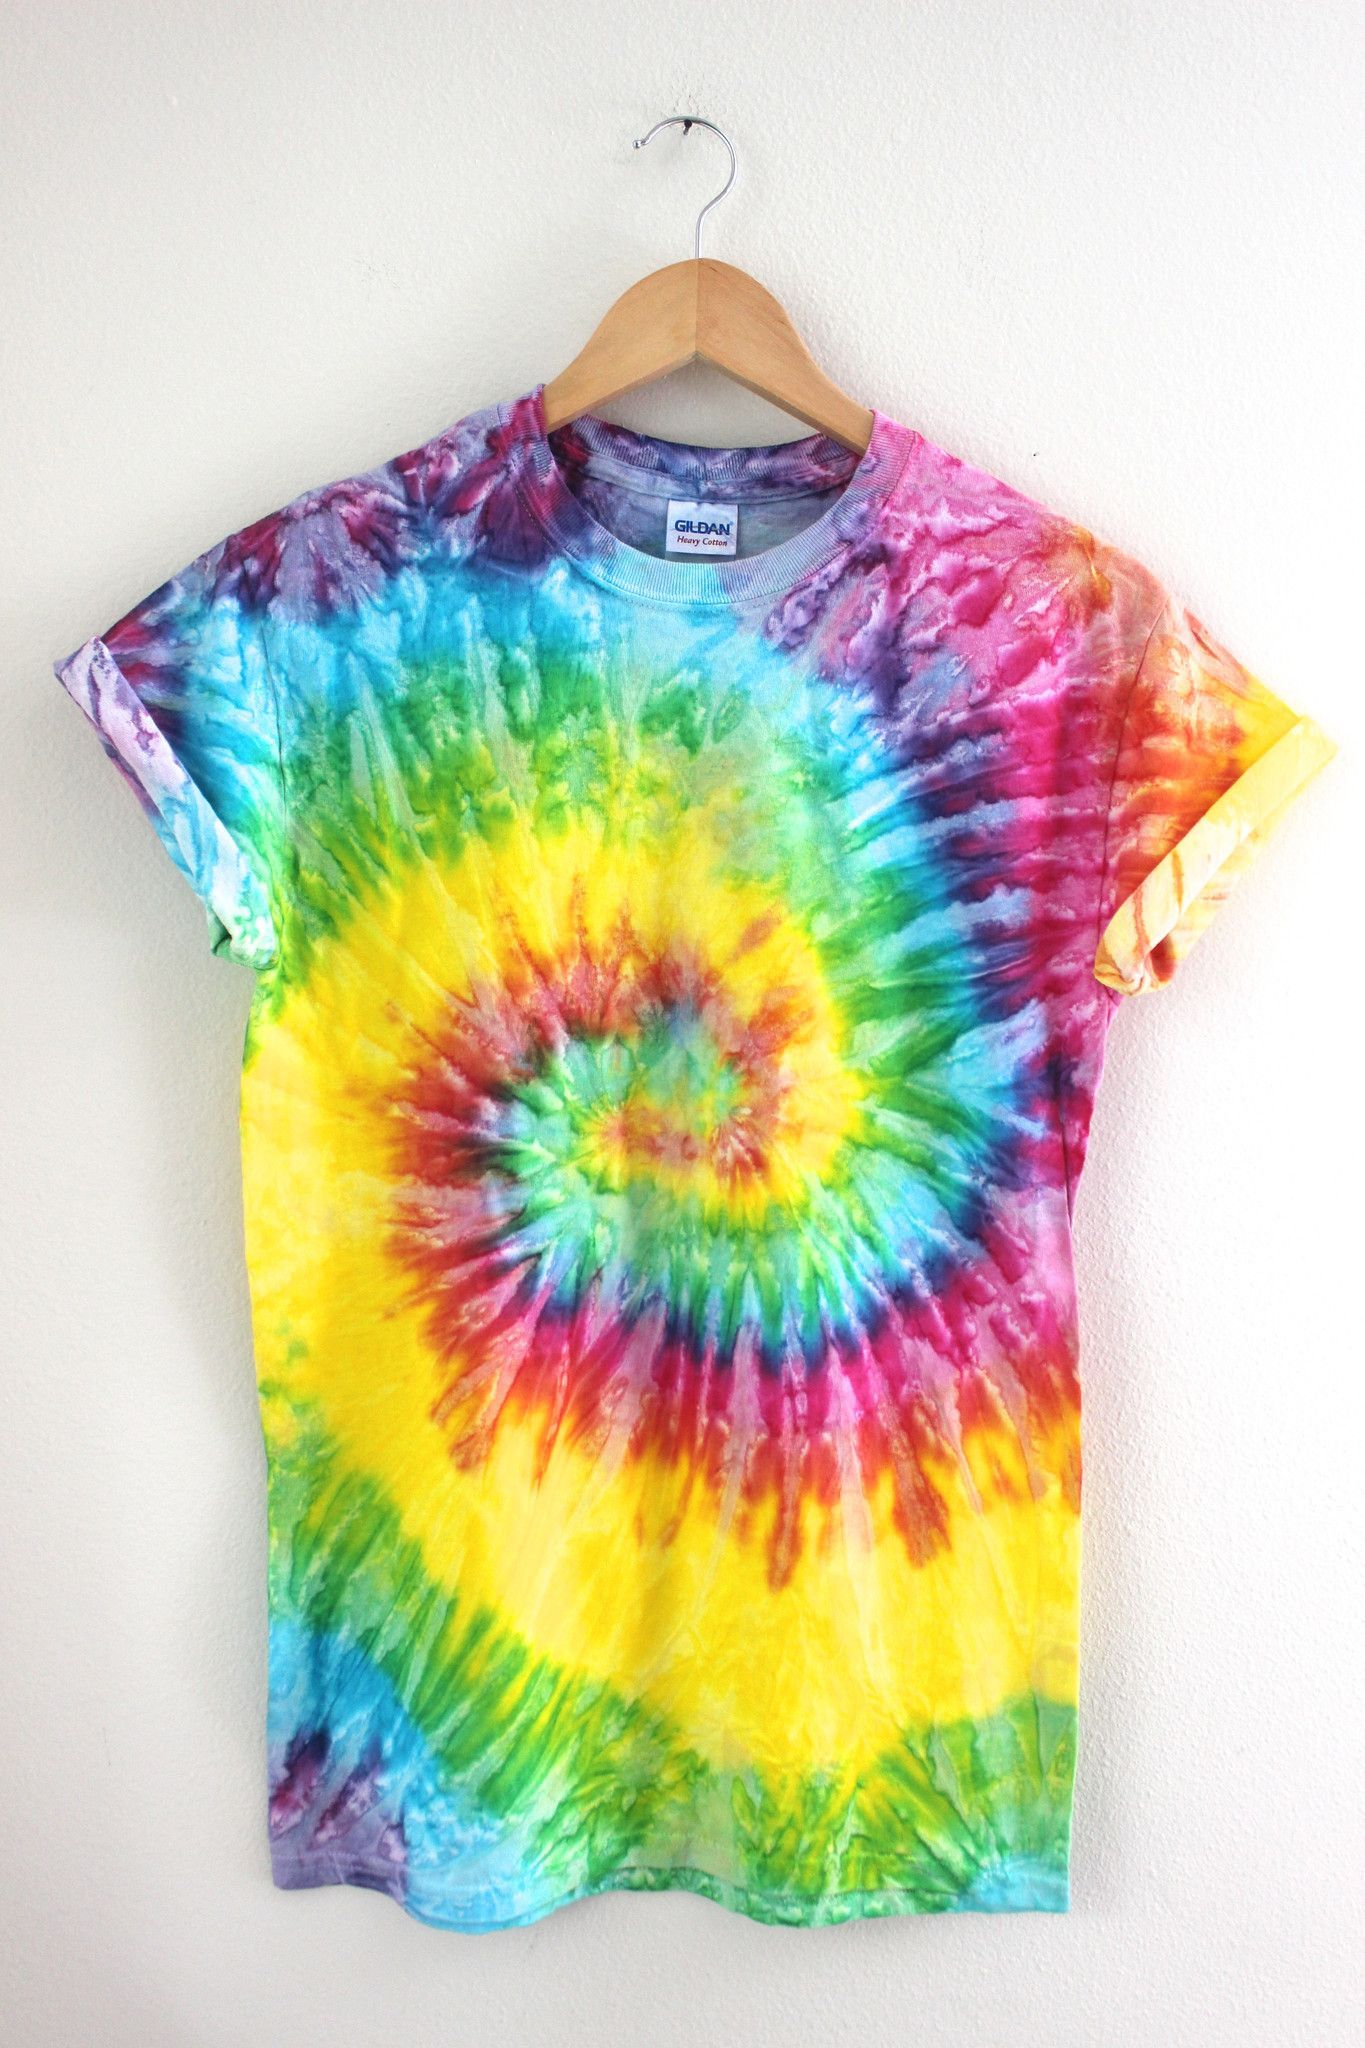 Bright Rainbow Tie Dye Unisex Tee Clothes Pinterest Rainbows